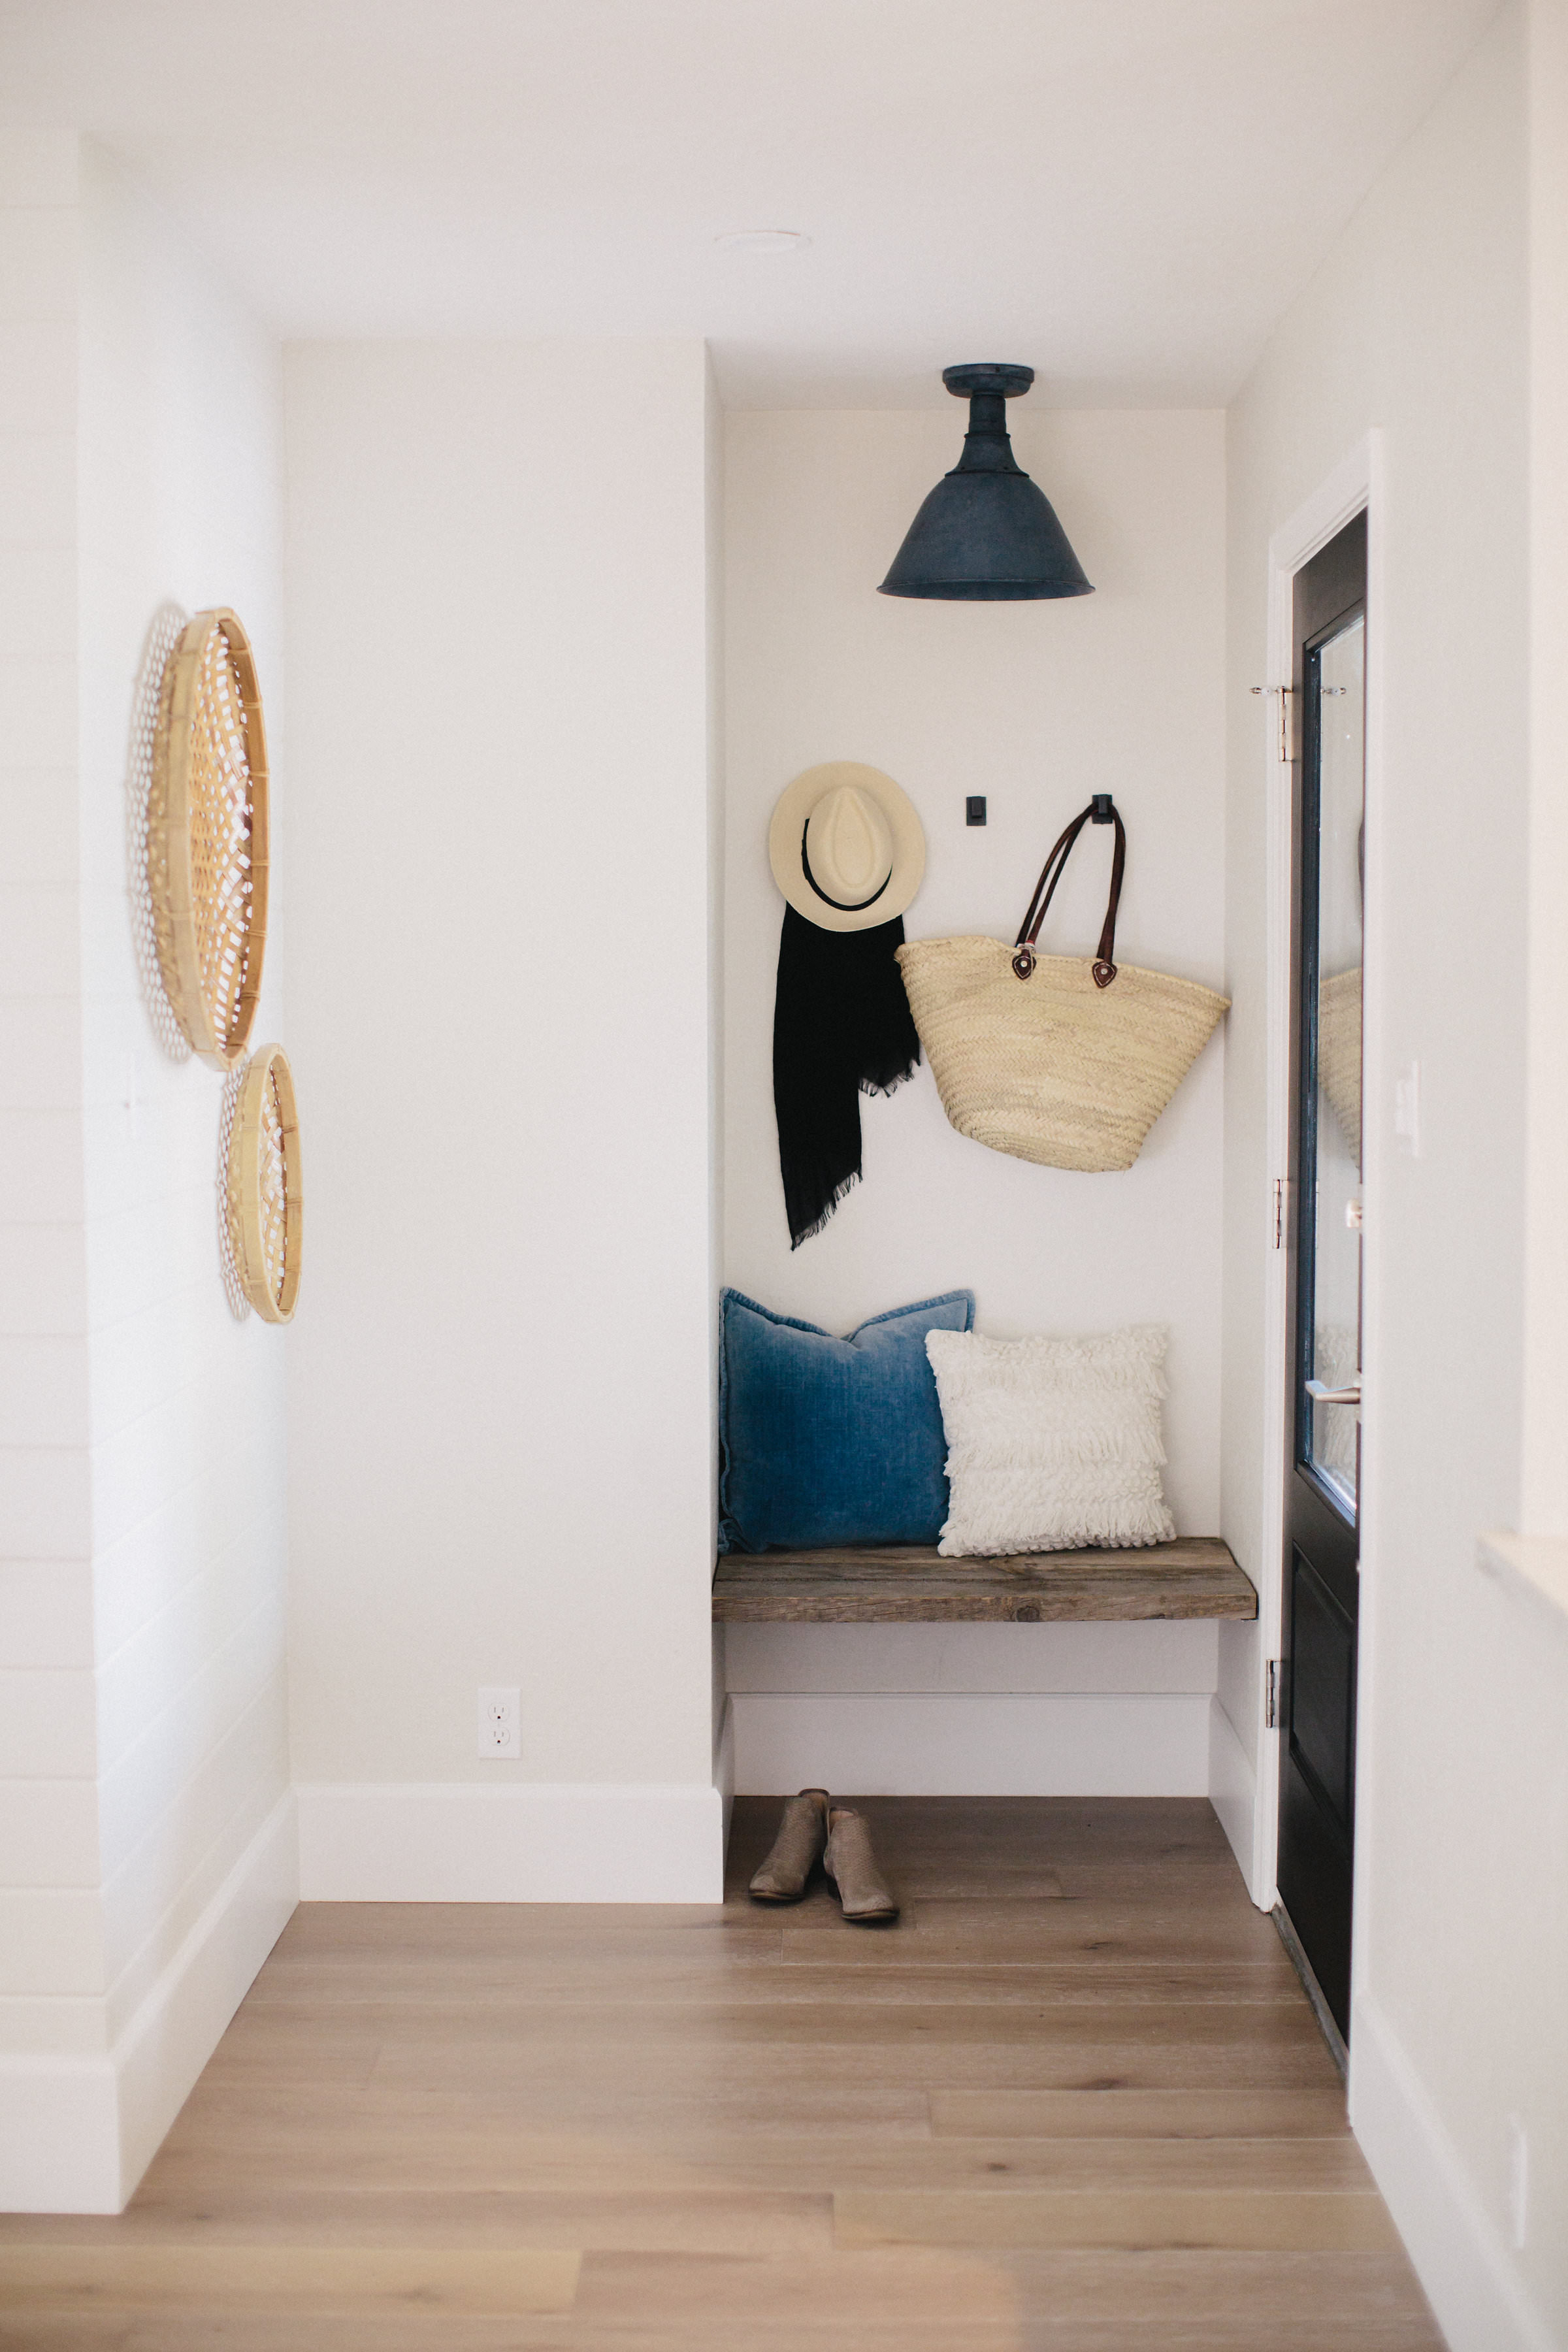 Built-in bench in the entryway with weathered wood | boxwoodavenue.com #entryway #builtinbench